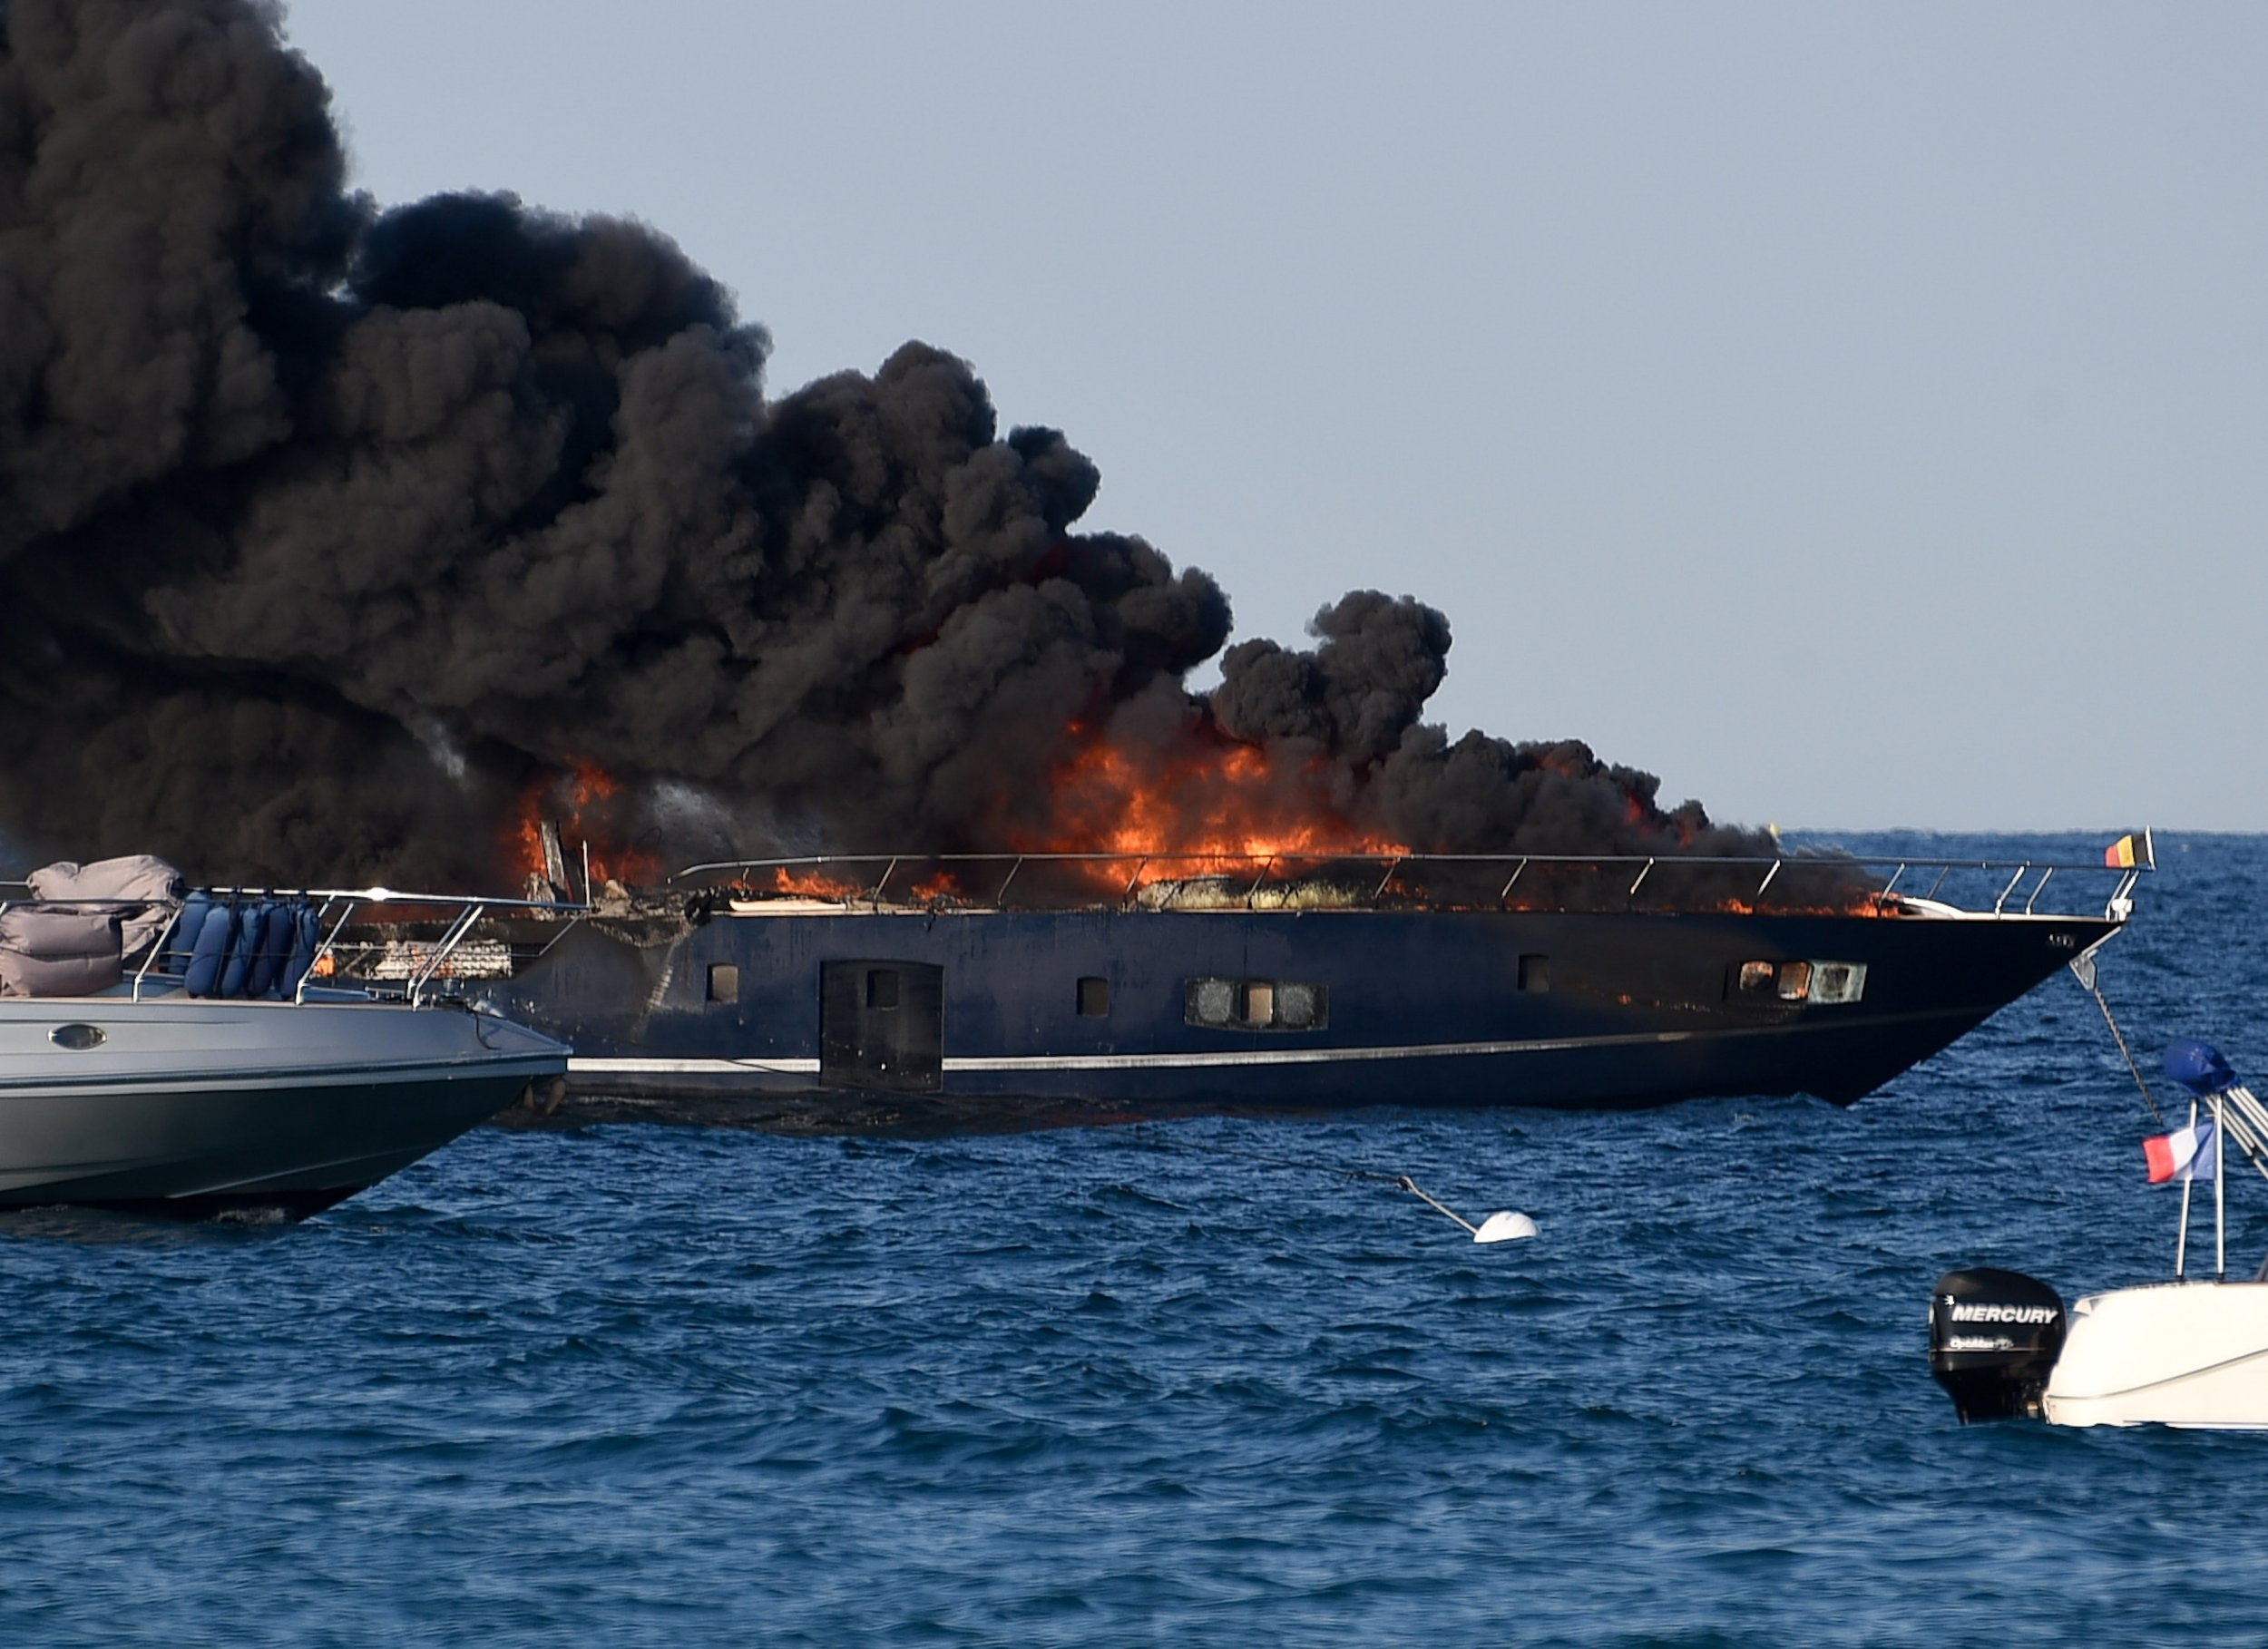 Luxury yacht bursts into flames in St Tropez